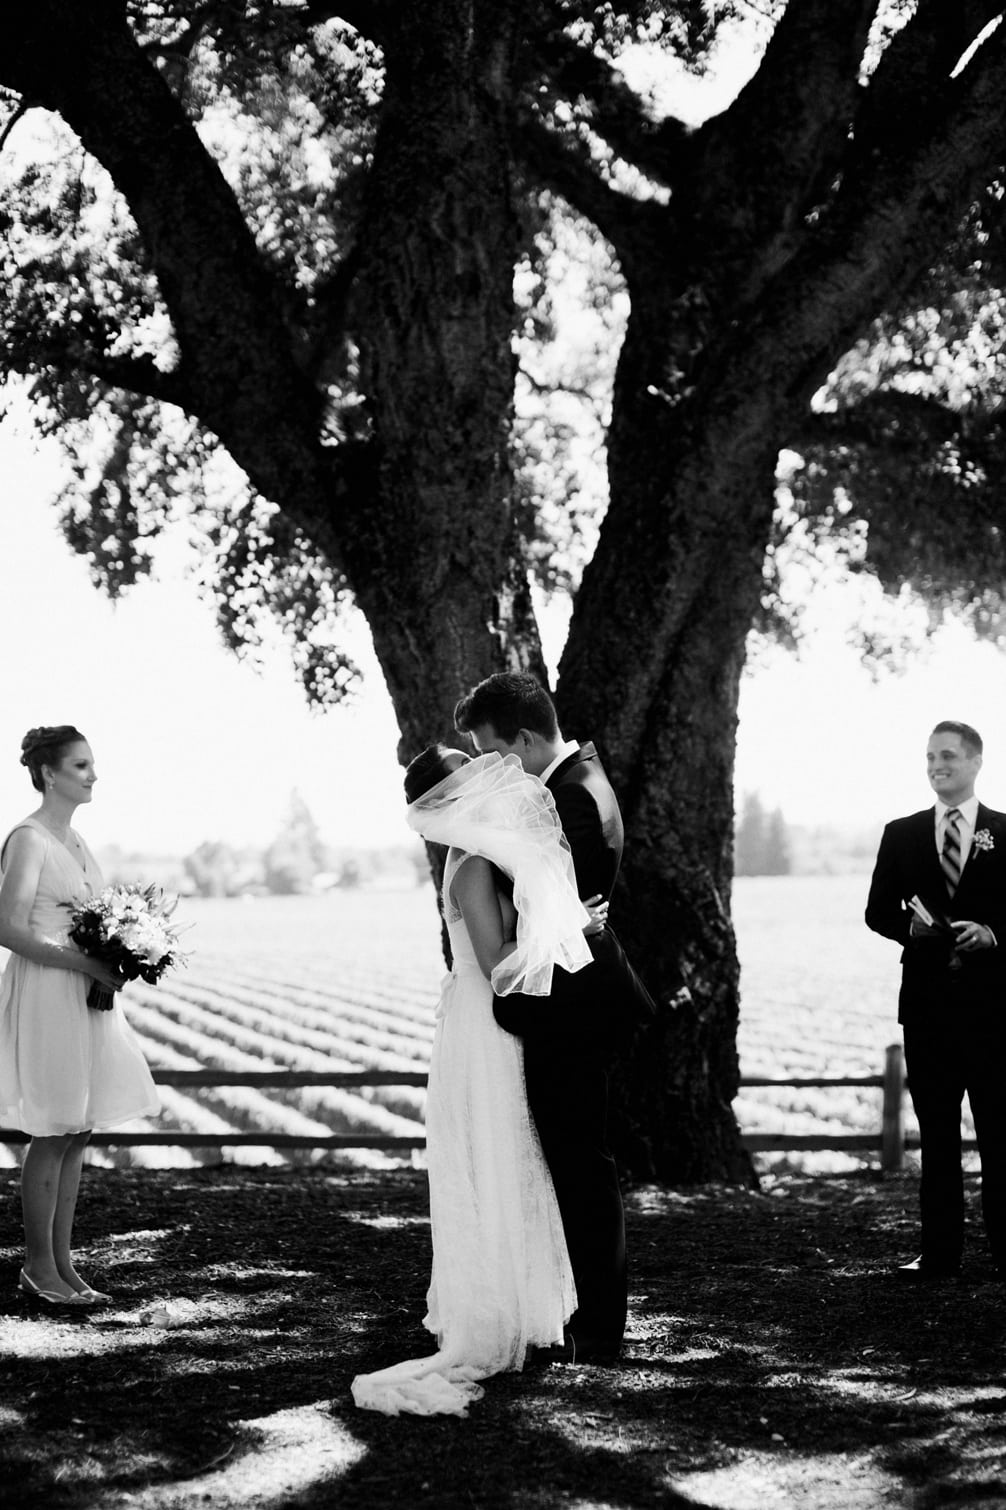 Tiffany and Drew's wedding at the Healdsburg Country Gardens